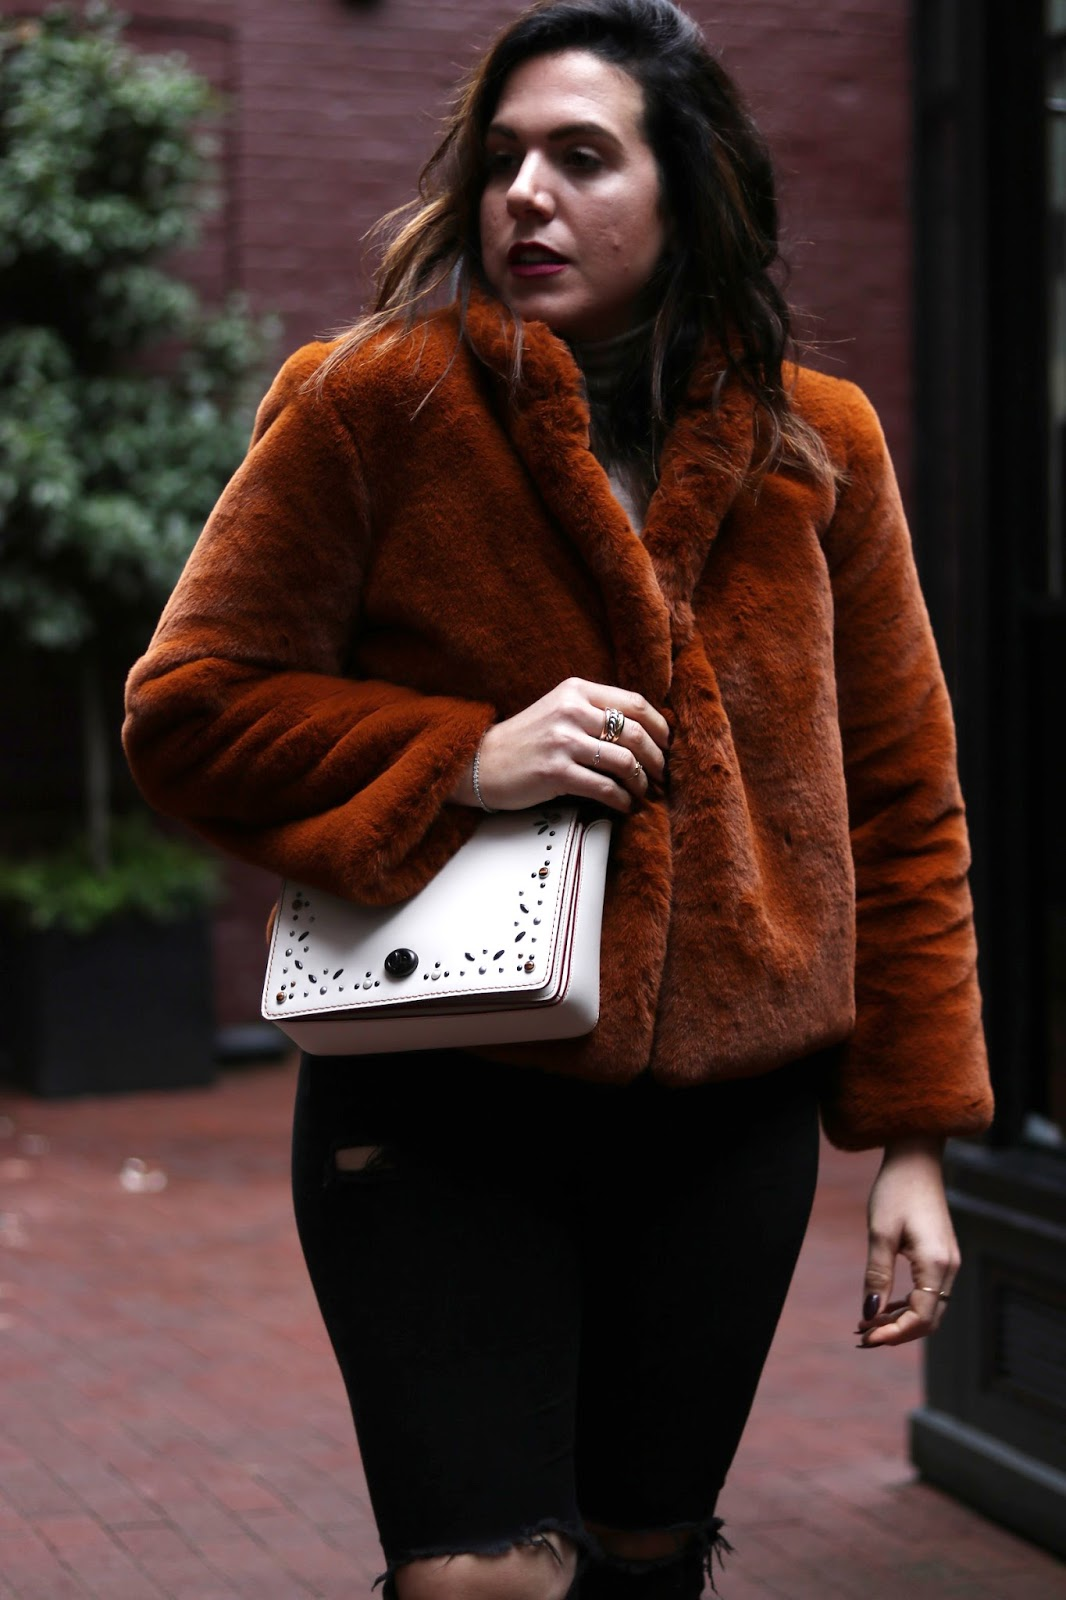 Coach Create Dinky 45 white custom handbag faux fur coat outfit vancouver fashion blogger aleesha harris